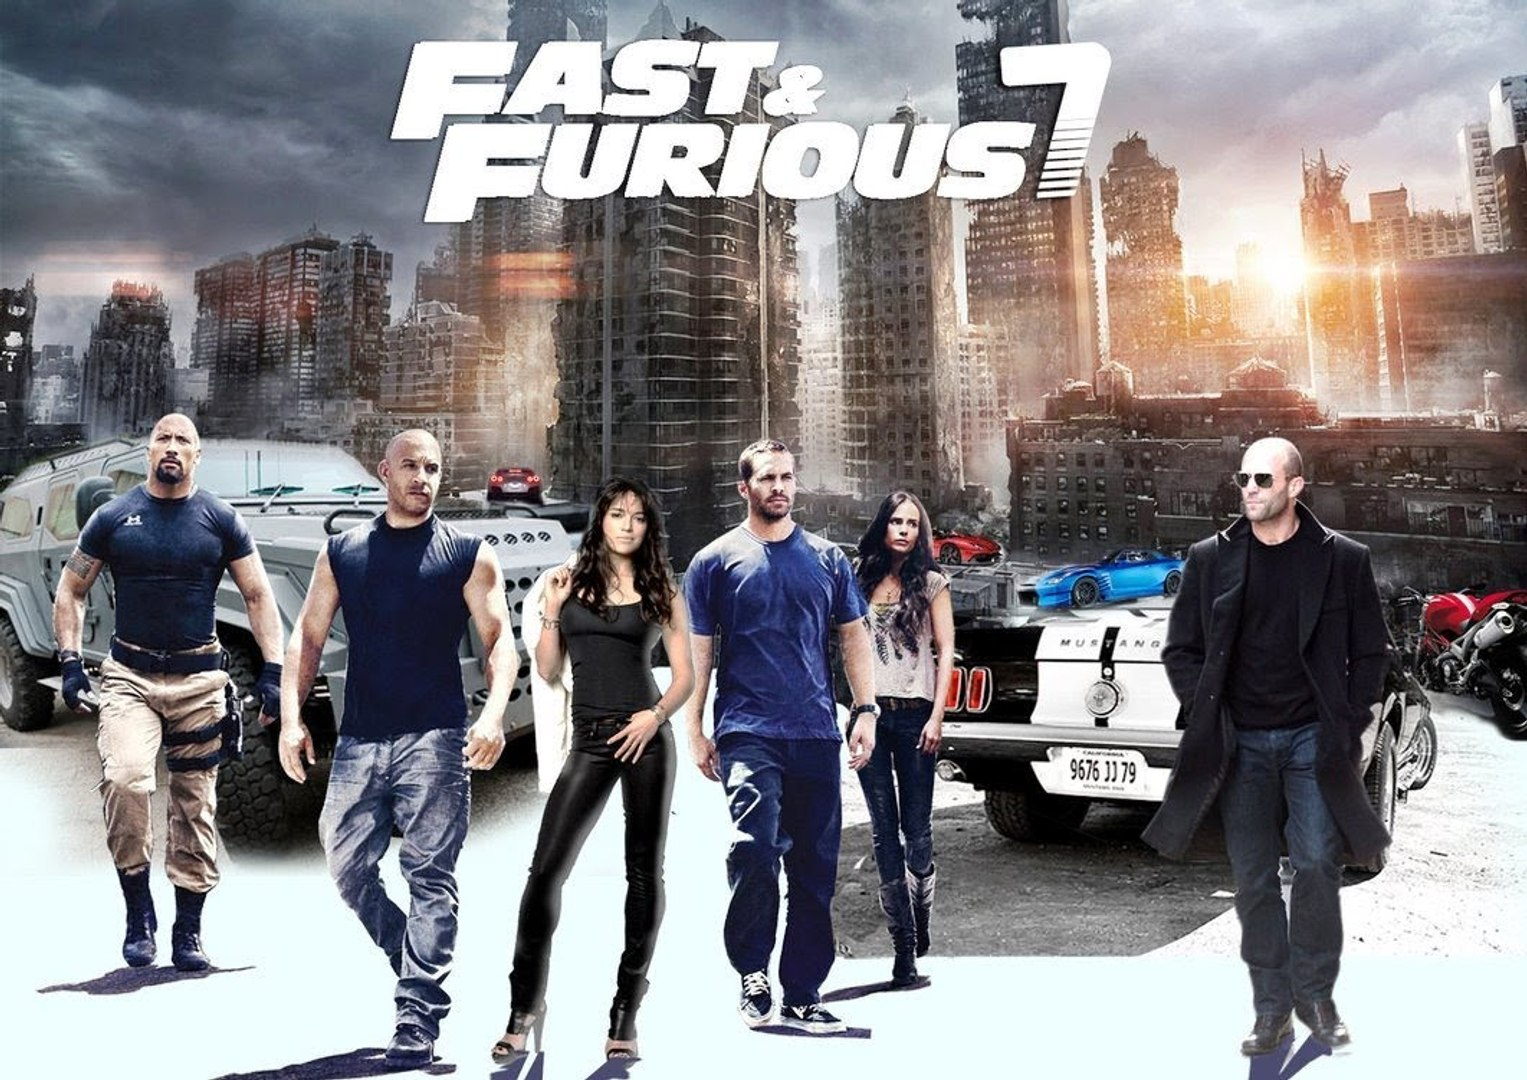 Fast and Furious 7 English 2015 - Vídeo Dailymotion